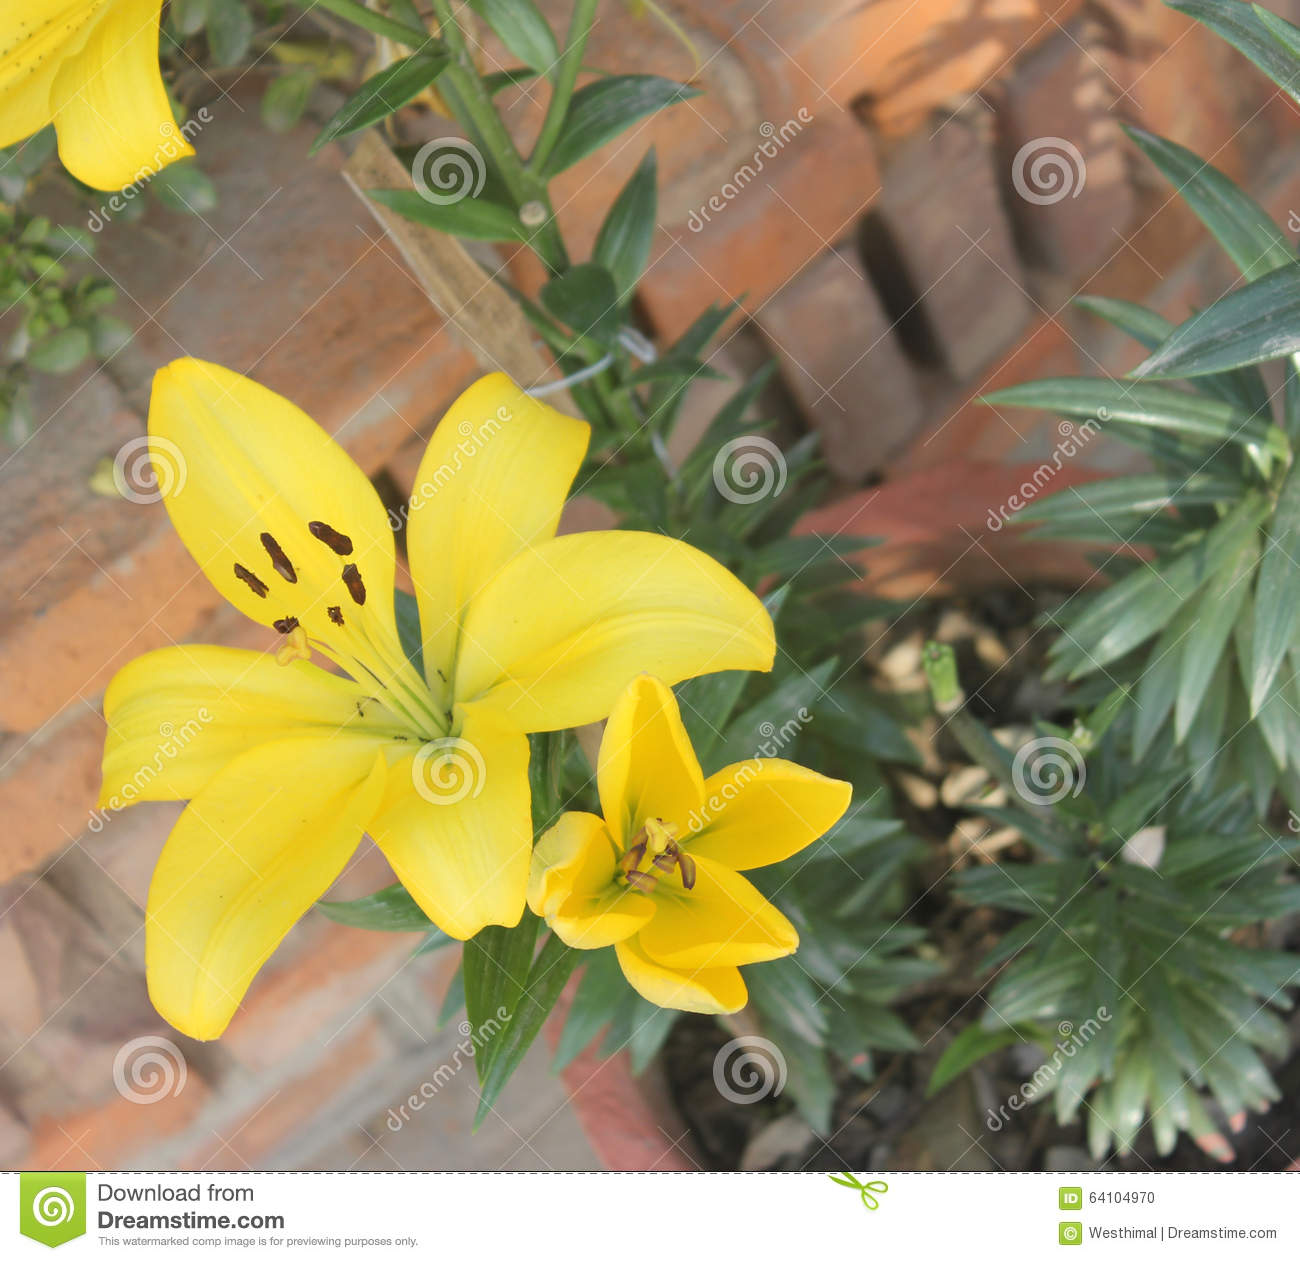 Lilium yellow lily stock photo image of plant popular 64104970 lilium yellow lily tall bulbous perennial with linear green leaves and large yellow flowers in terminal part popular garden plant mightylinksfo